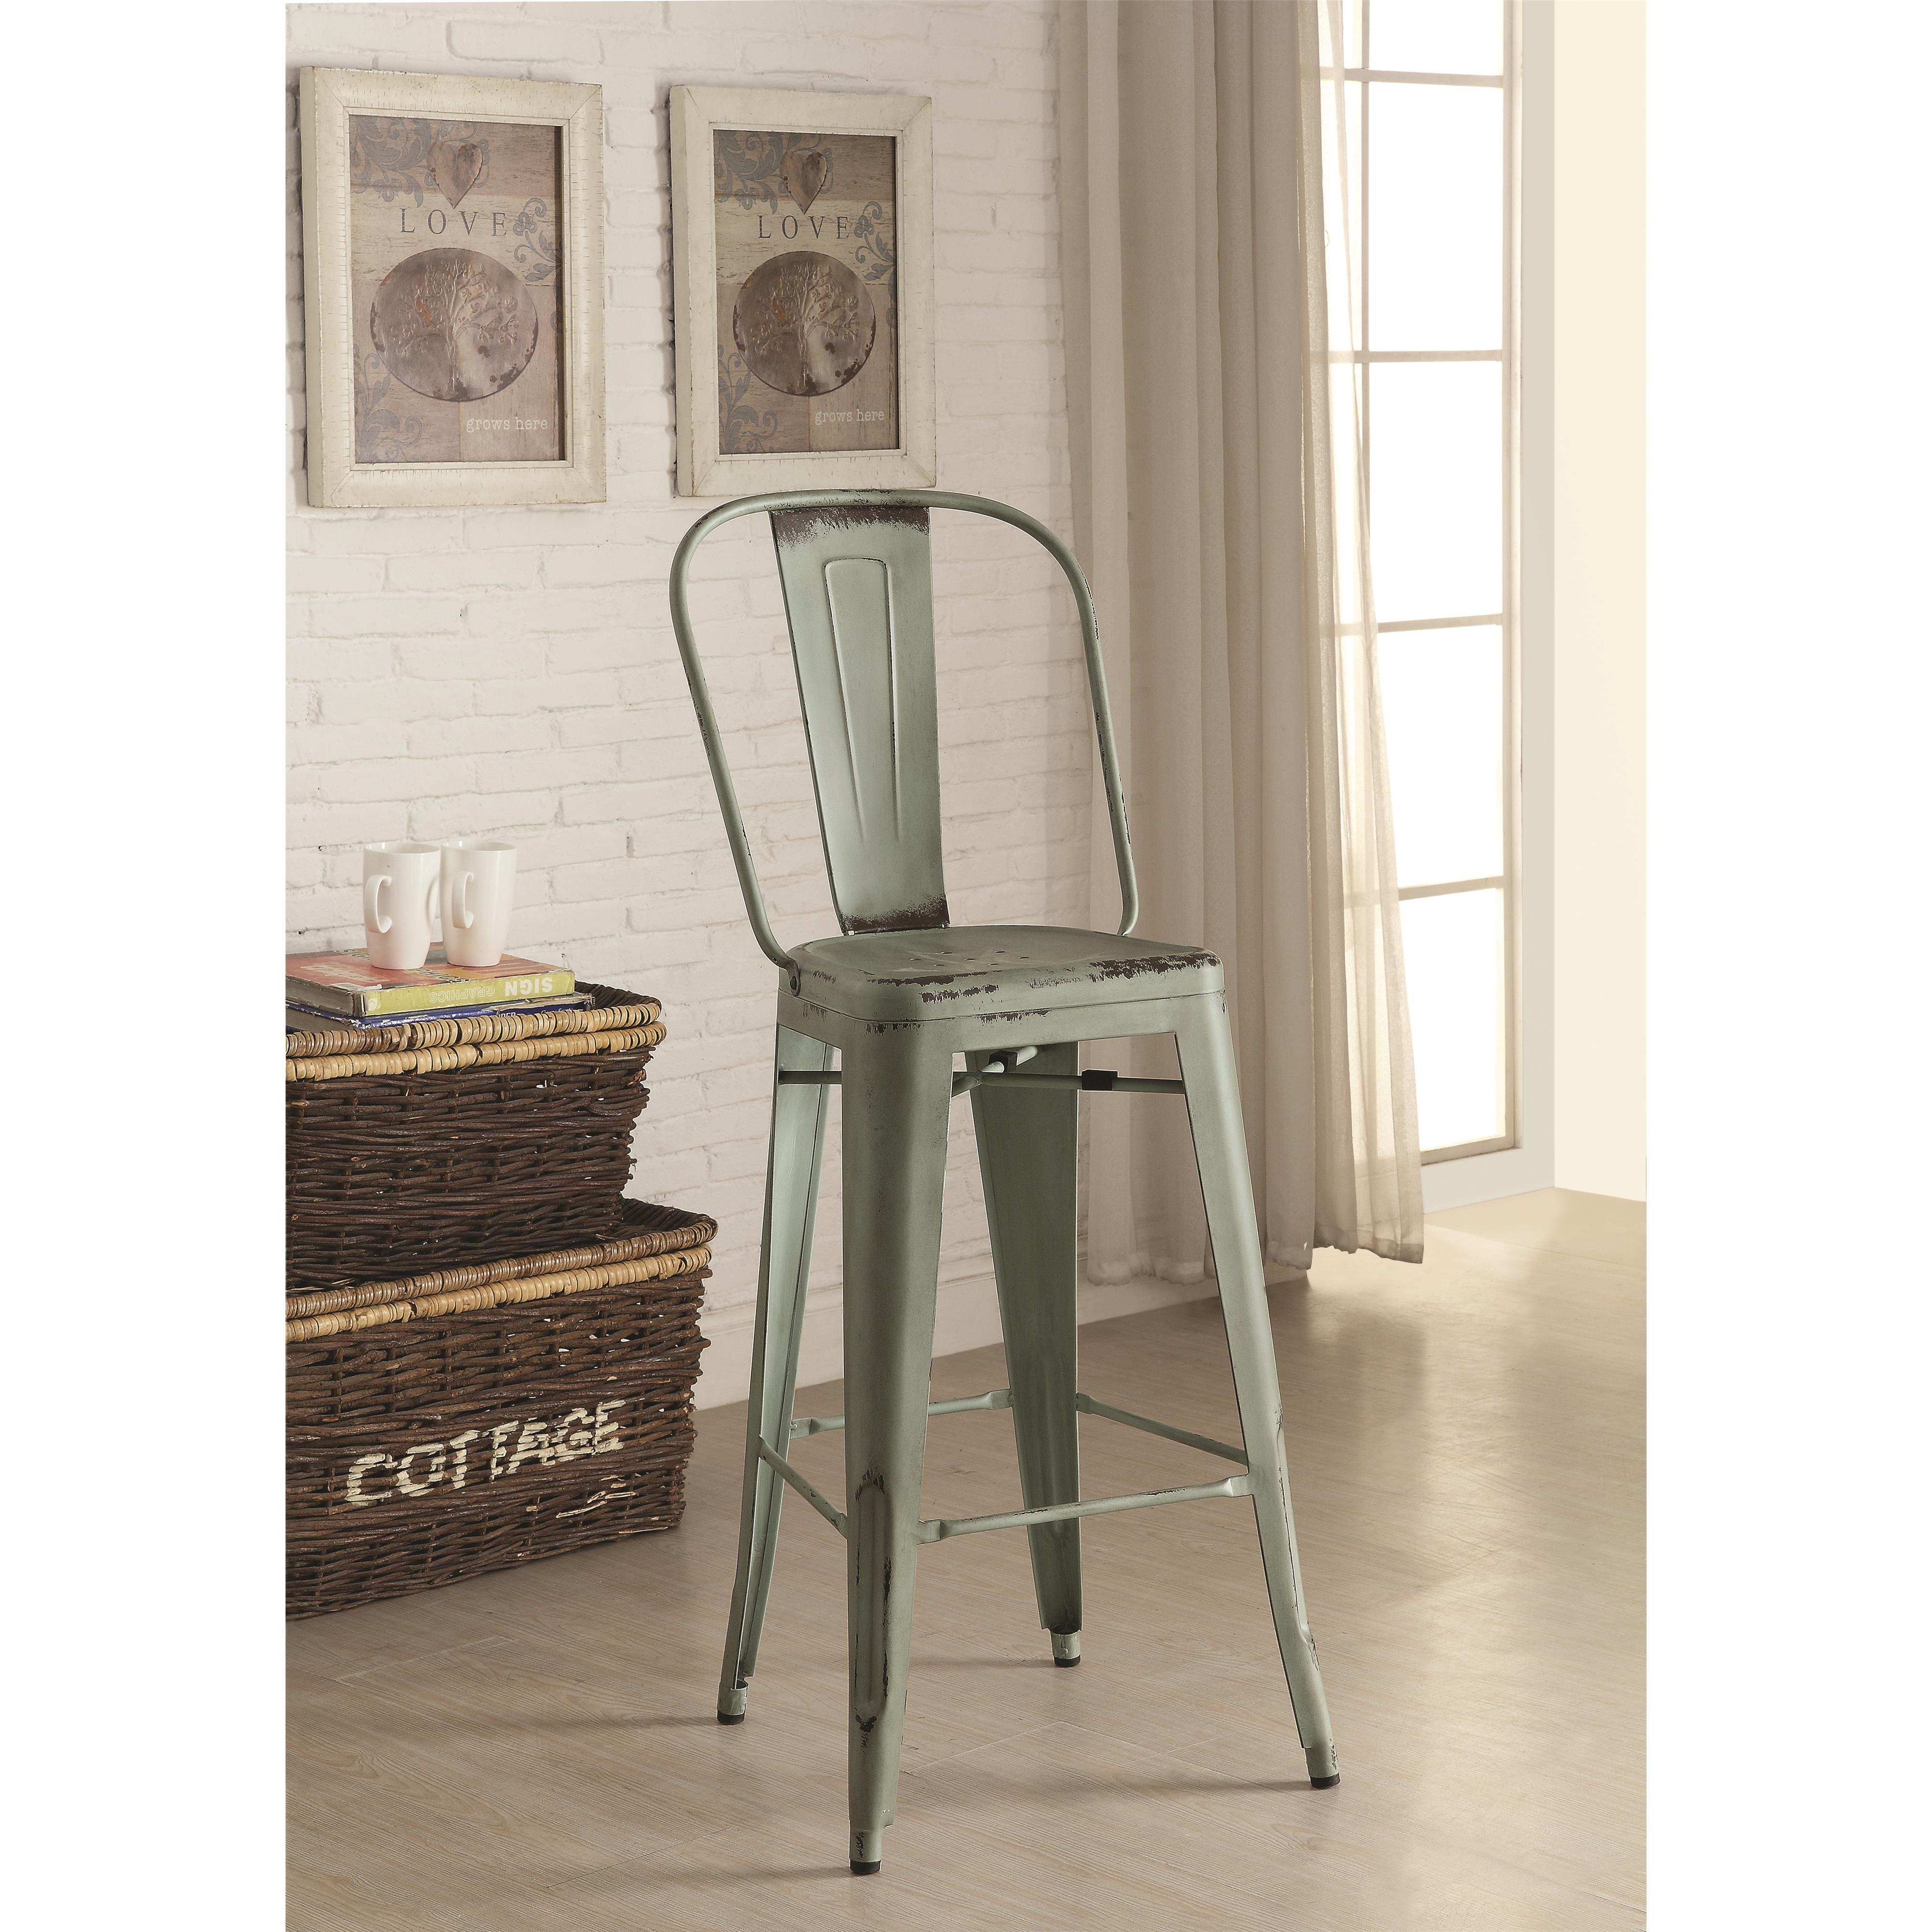 Coaster Dining Chairs and Bar Stools Bar Stool - Item Number: 106014